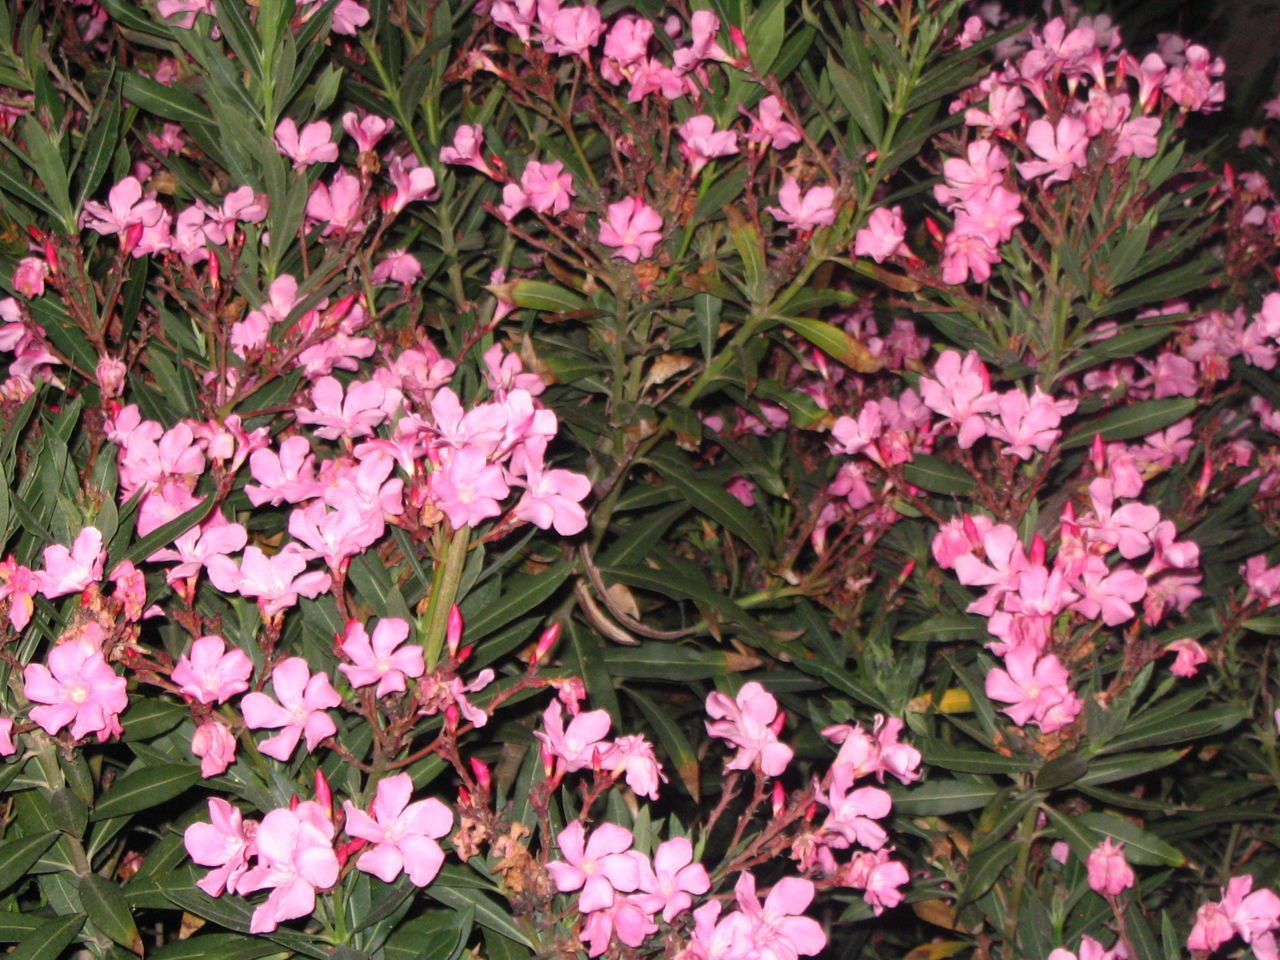 flower, pink color, growth, spring, foliage, outdoors, nature, no people, day, freshness